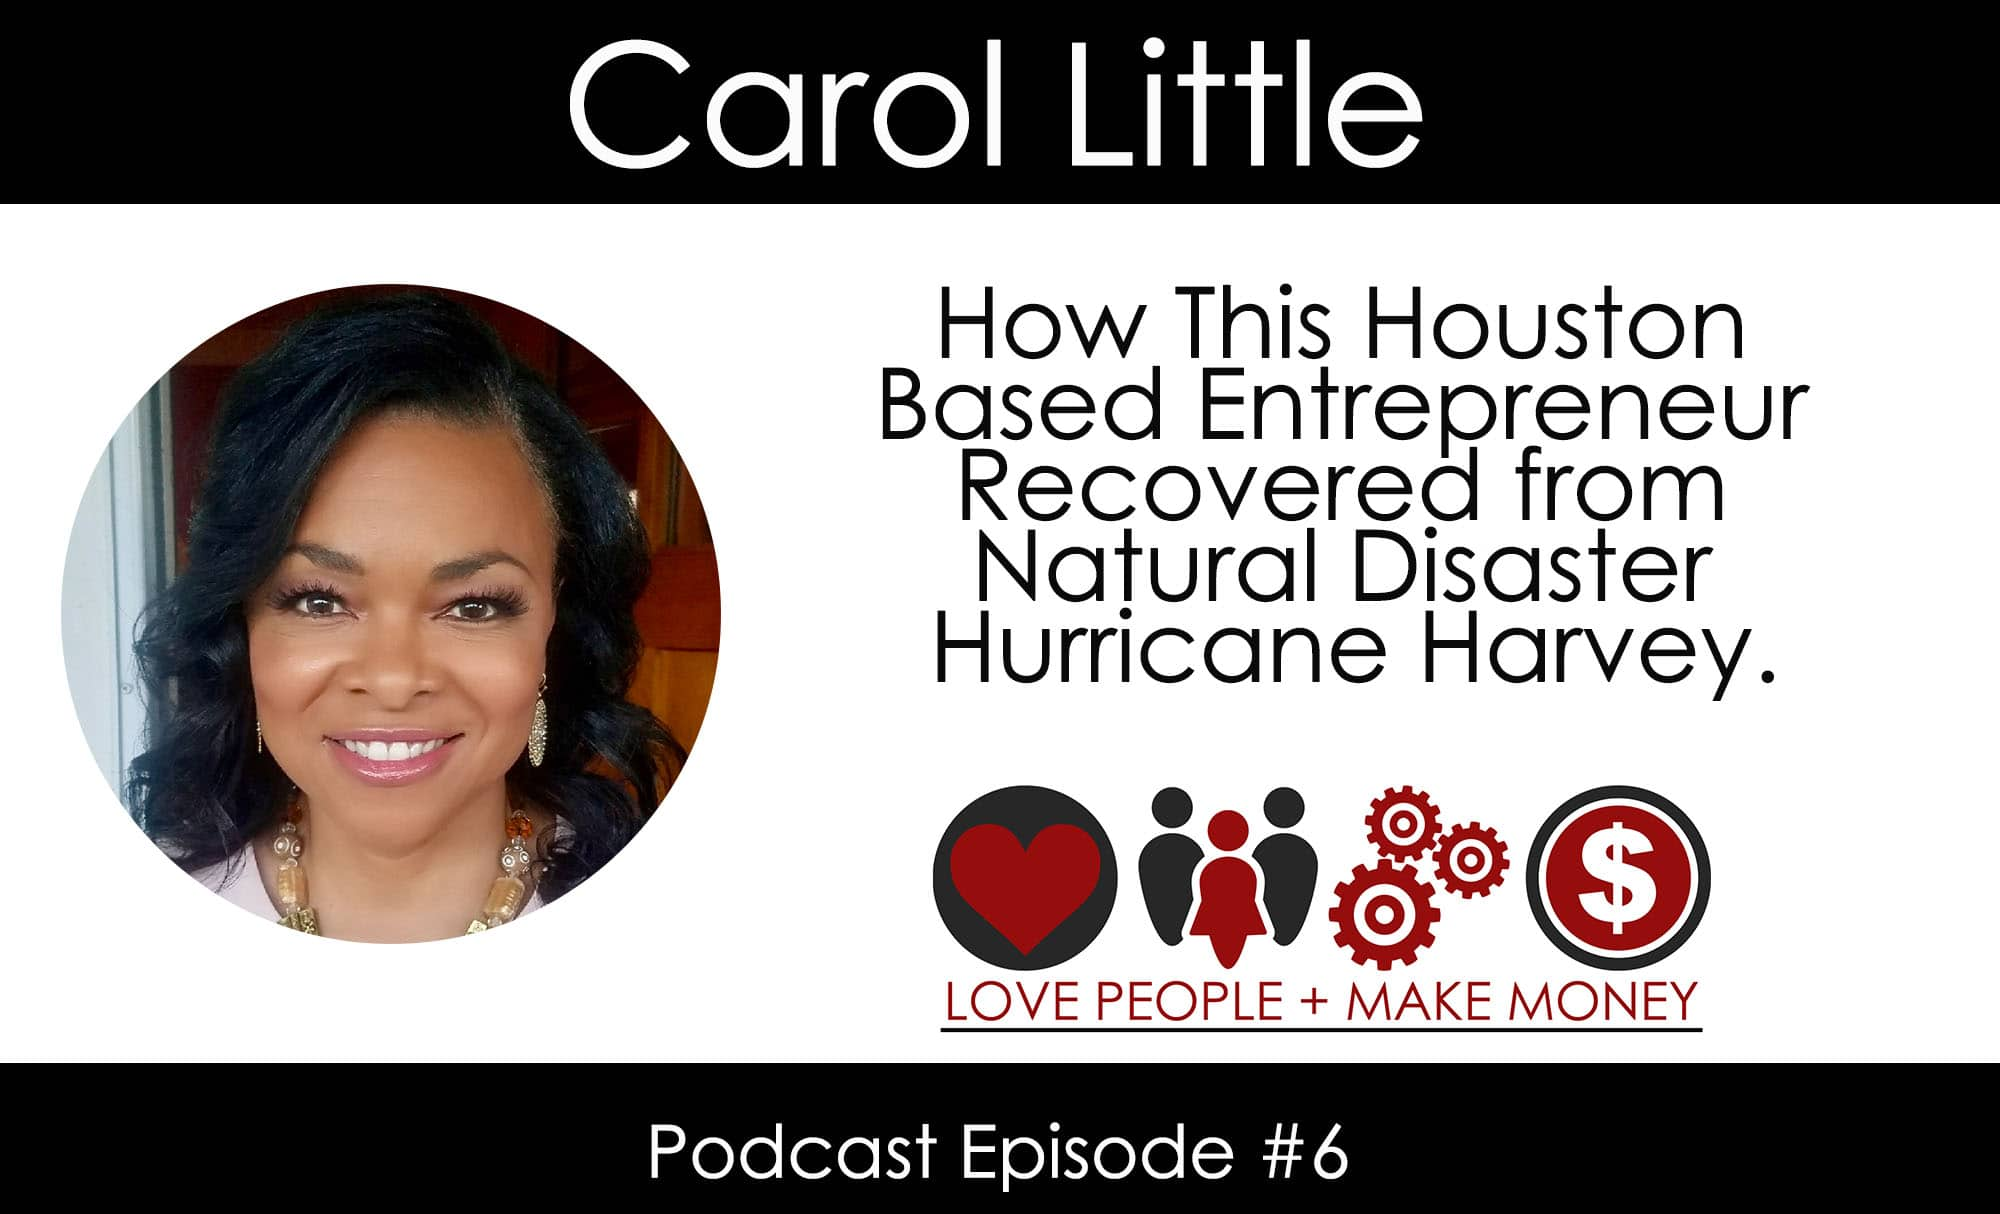 Podcast #6: Coming Back From A Natural Disaster